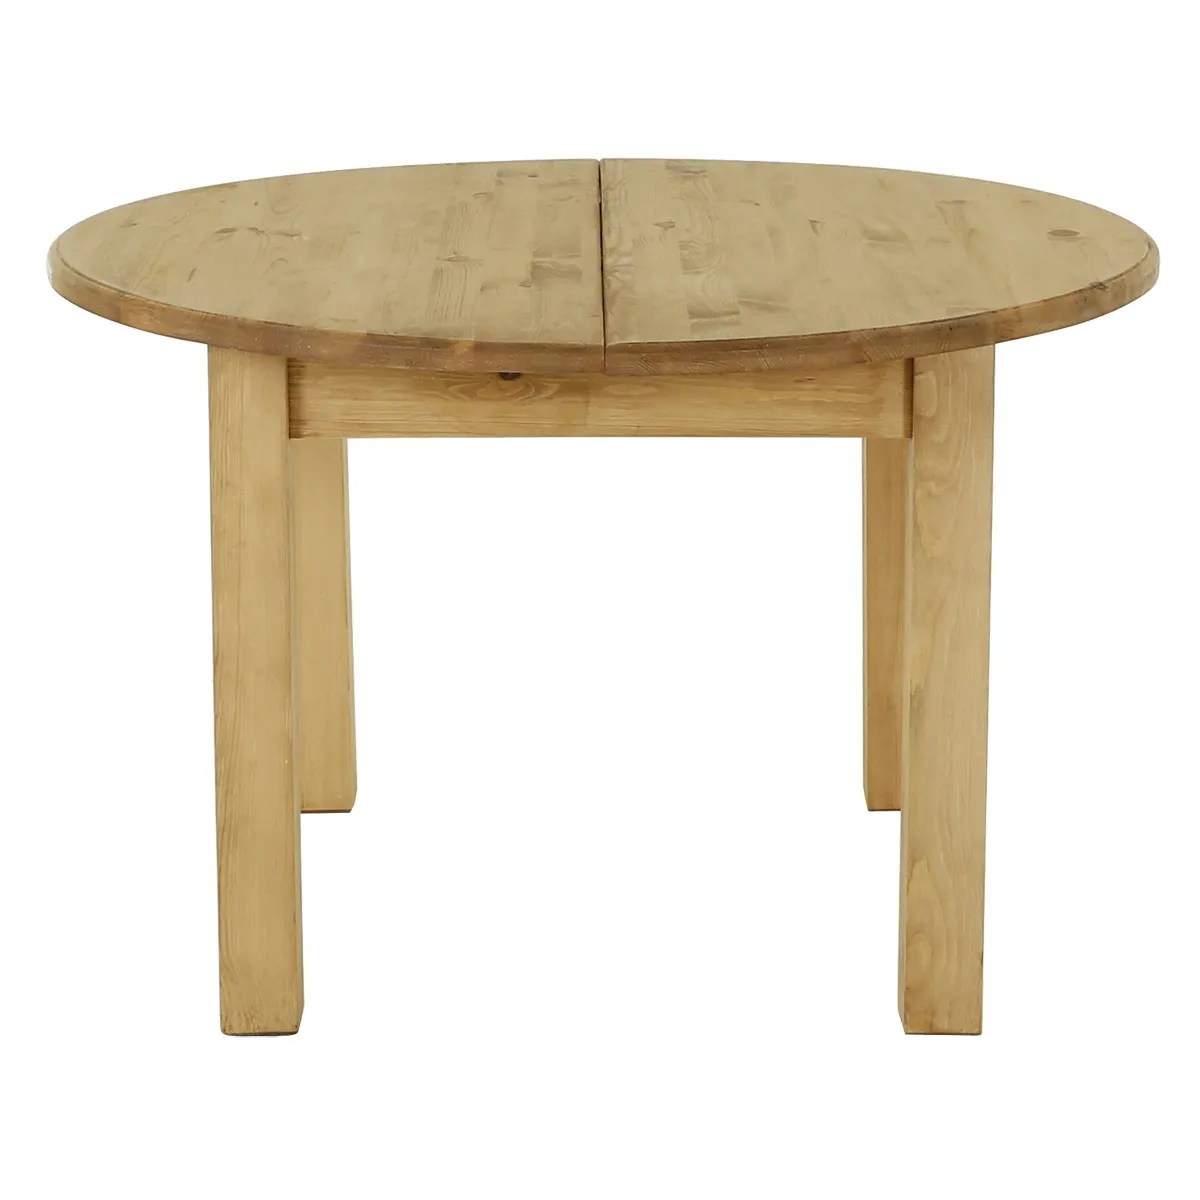 Table Ronde Massif Table Ronde Rustique En Pin Massif 120 Cm Rallonge 40 Cm Farmer